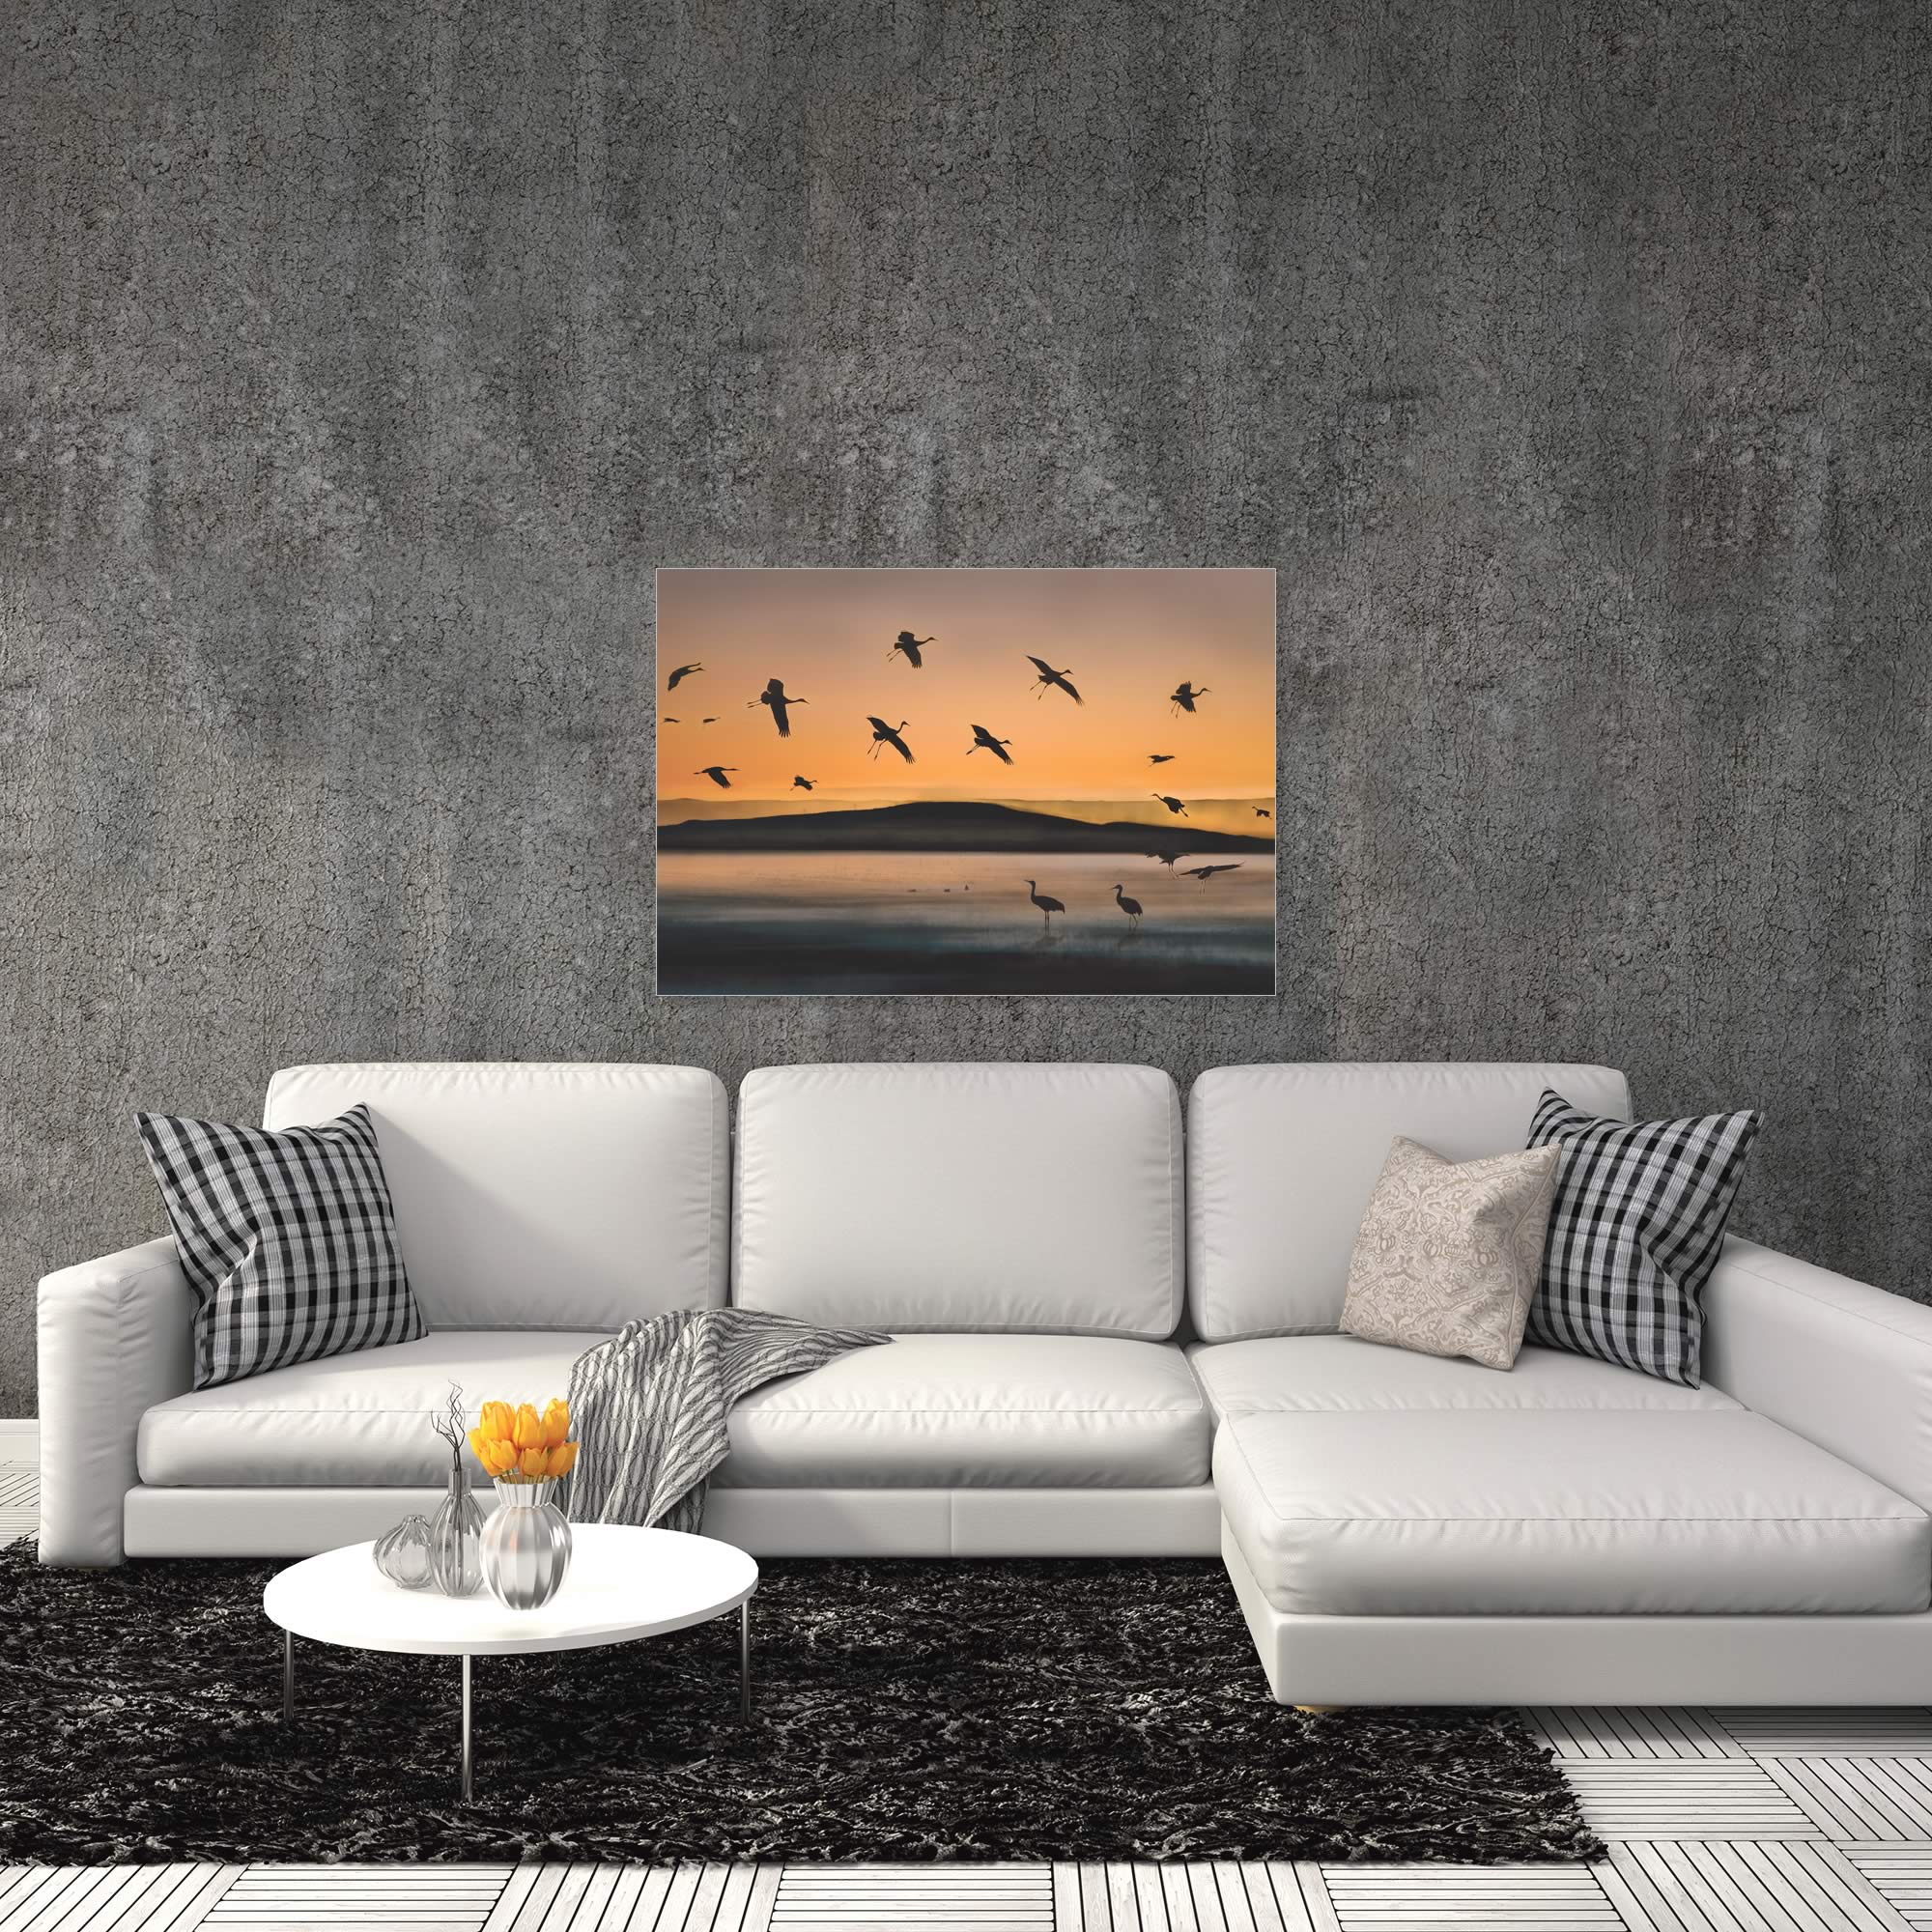 Cranes at Sunset by Shenshen Dou - Bird Silhouette Art on Metal or Acrylic - Alternate View 1